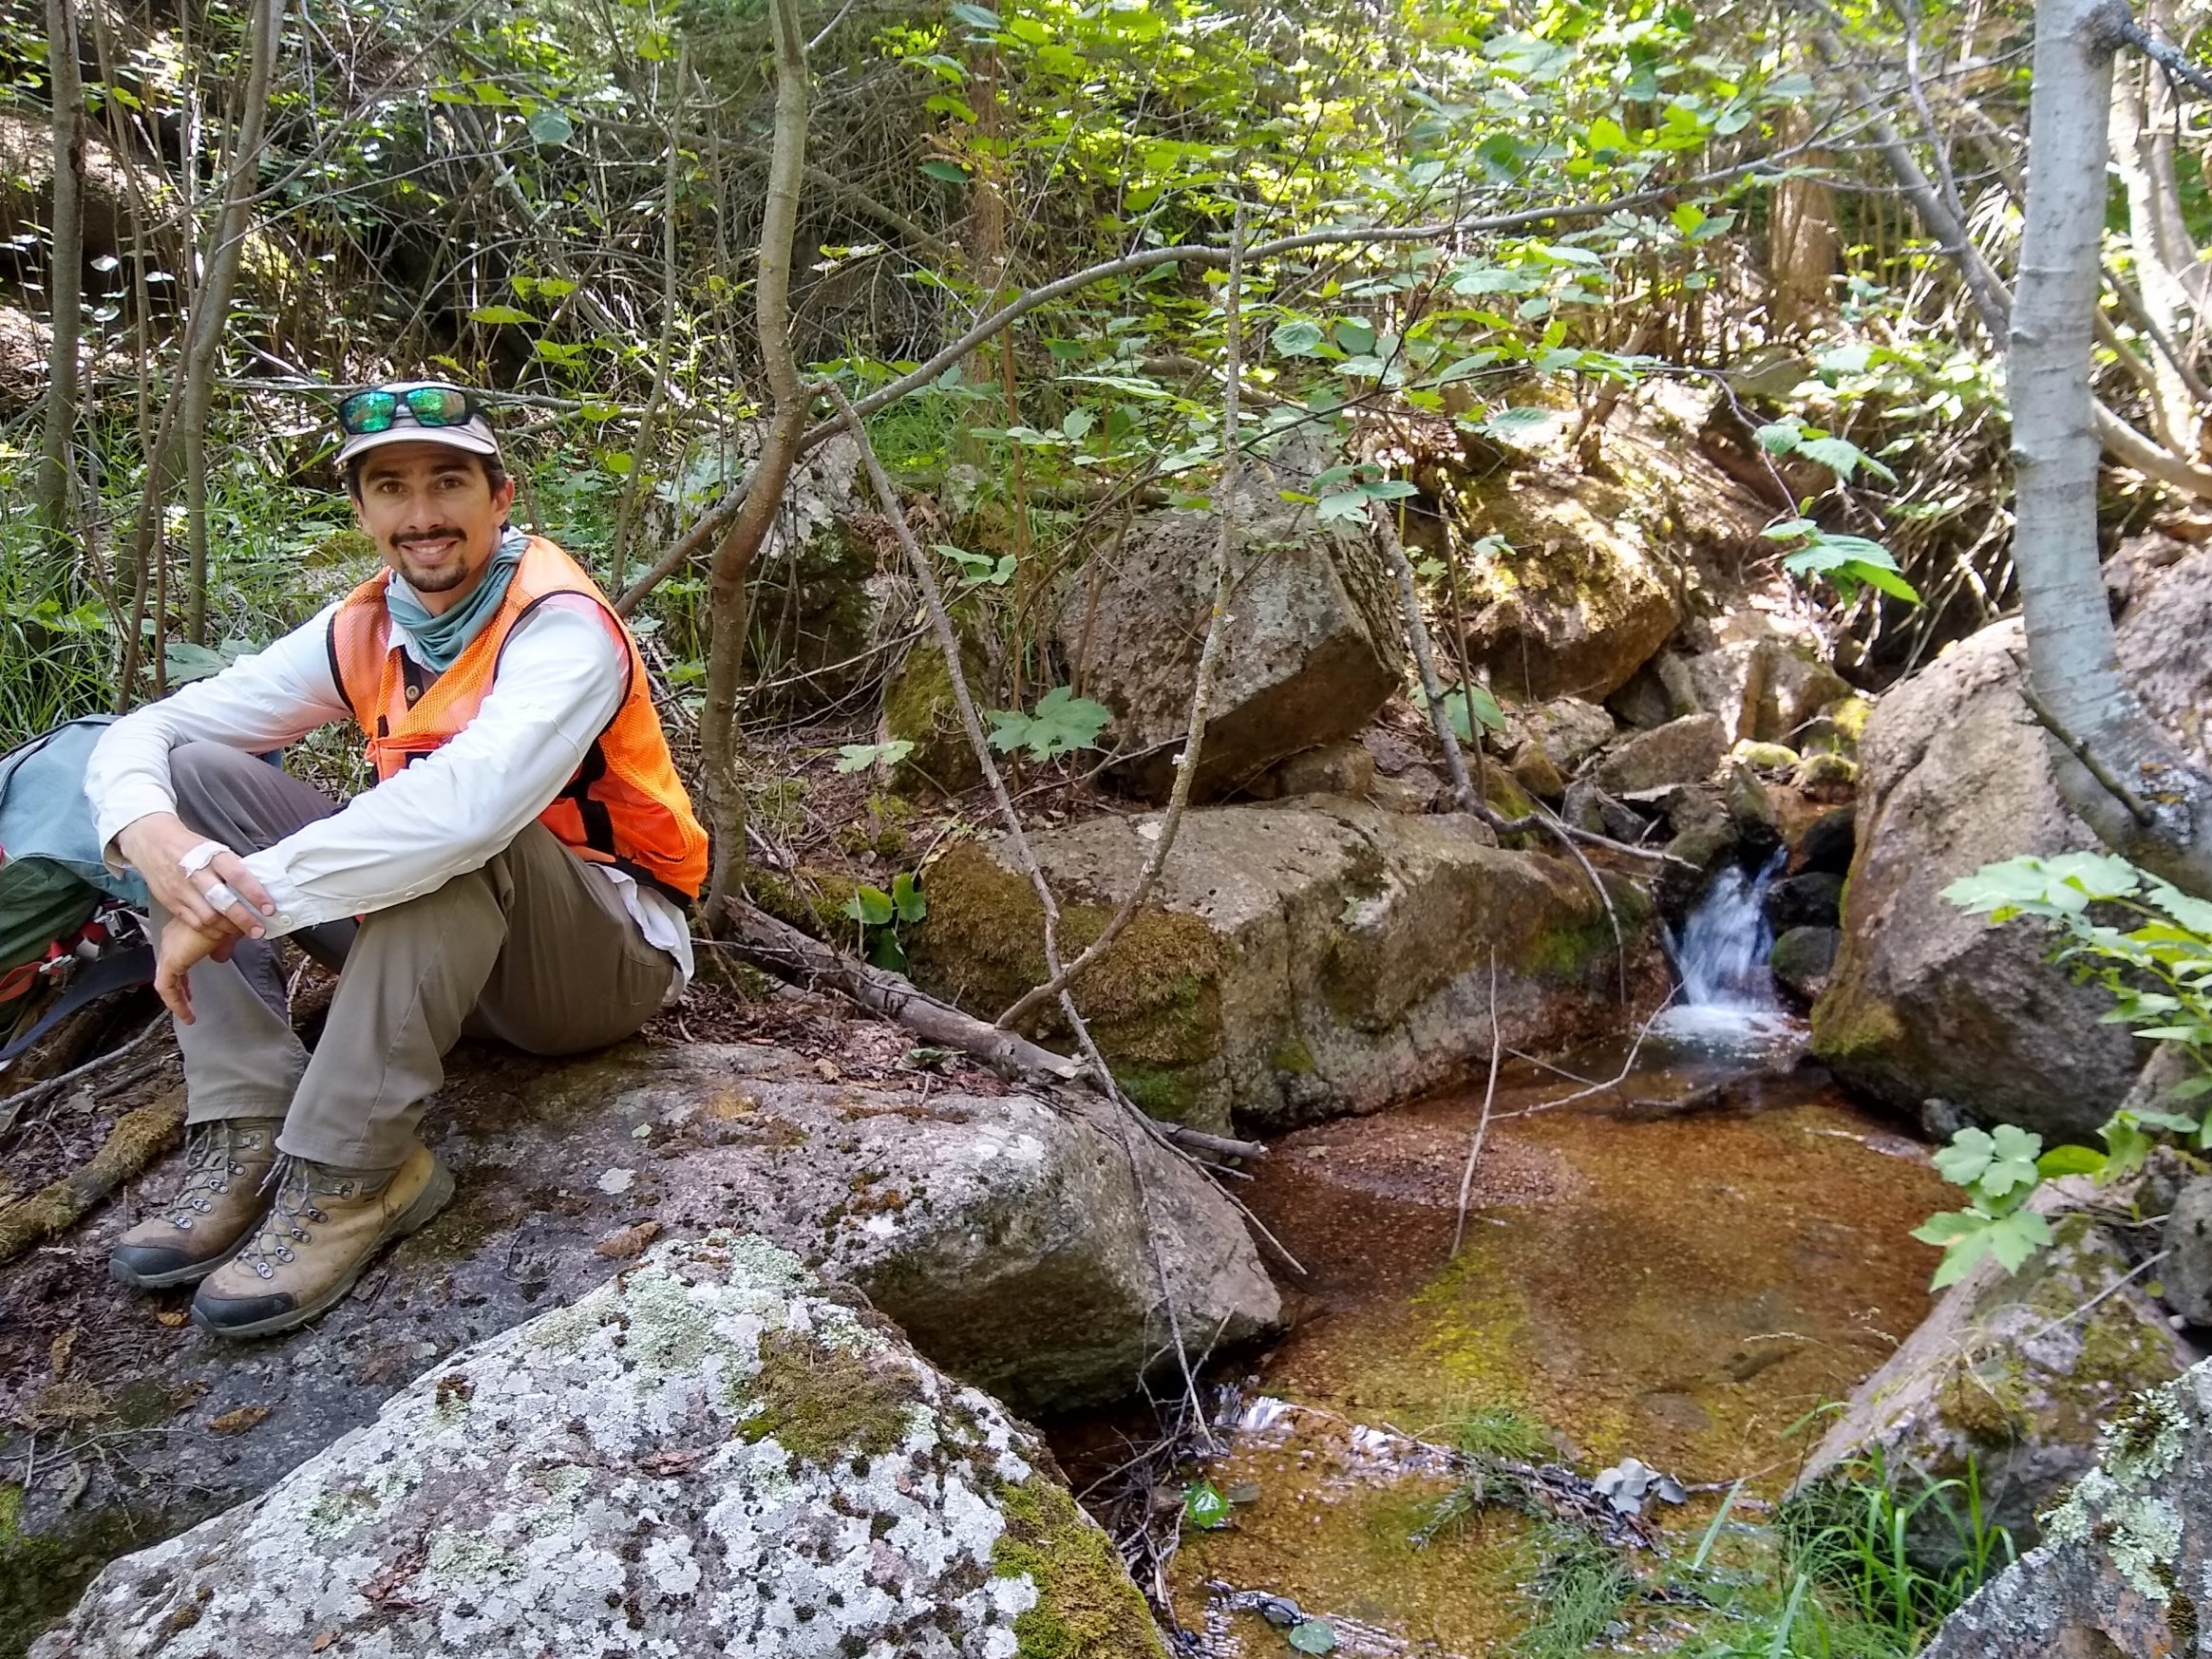 Justin Apfel Promoted to Associate Ecologist